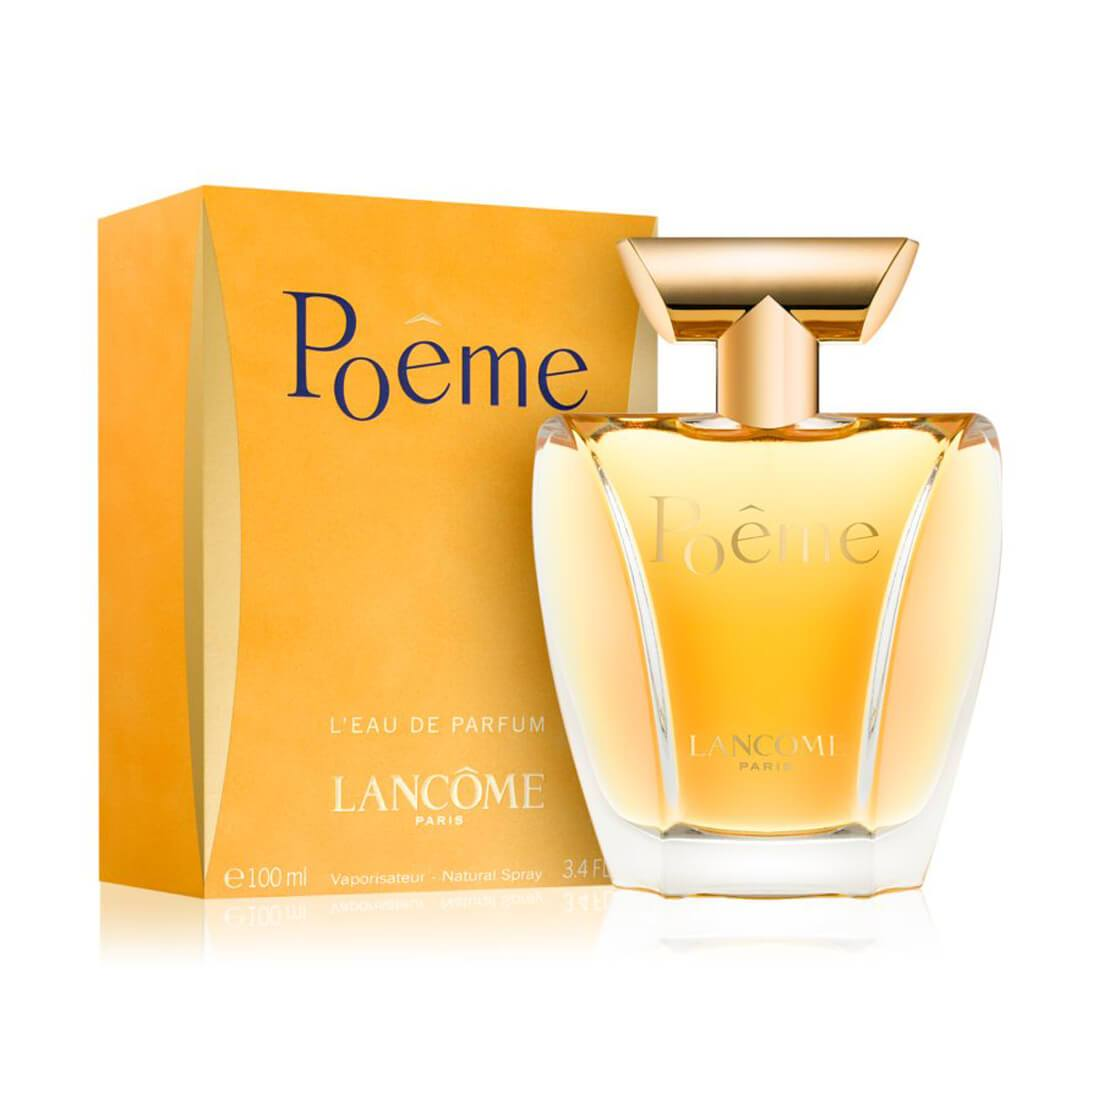 Lancome Poeme Eau De Perfume For Women 100ml